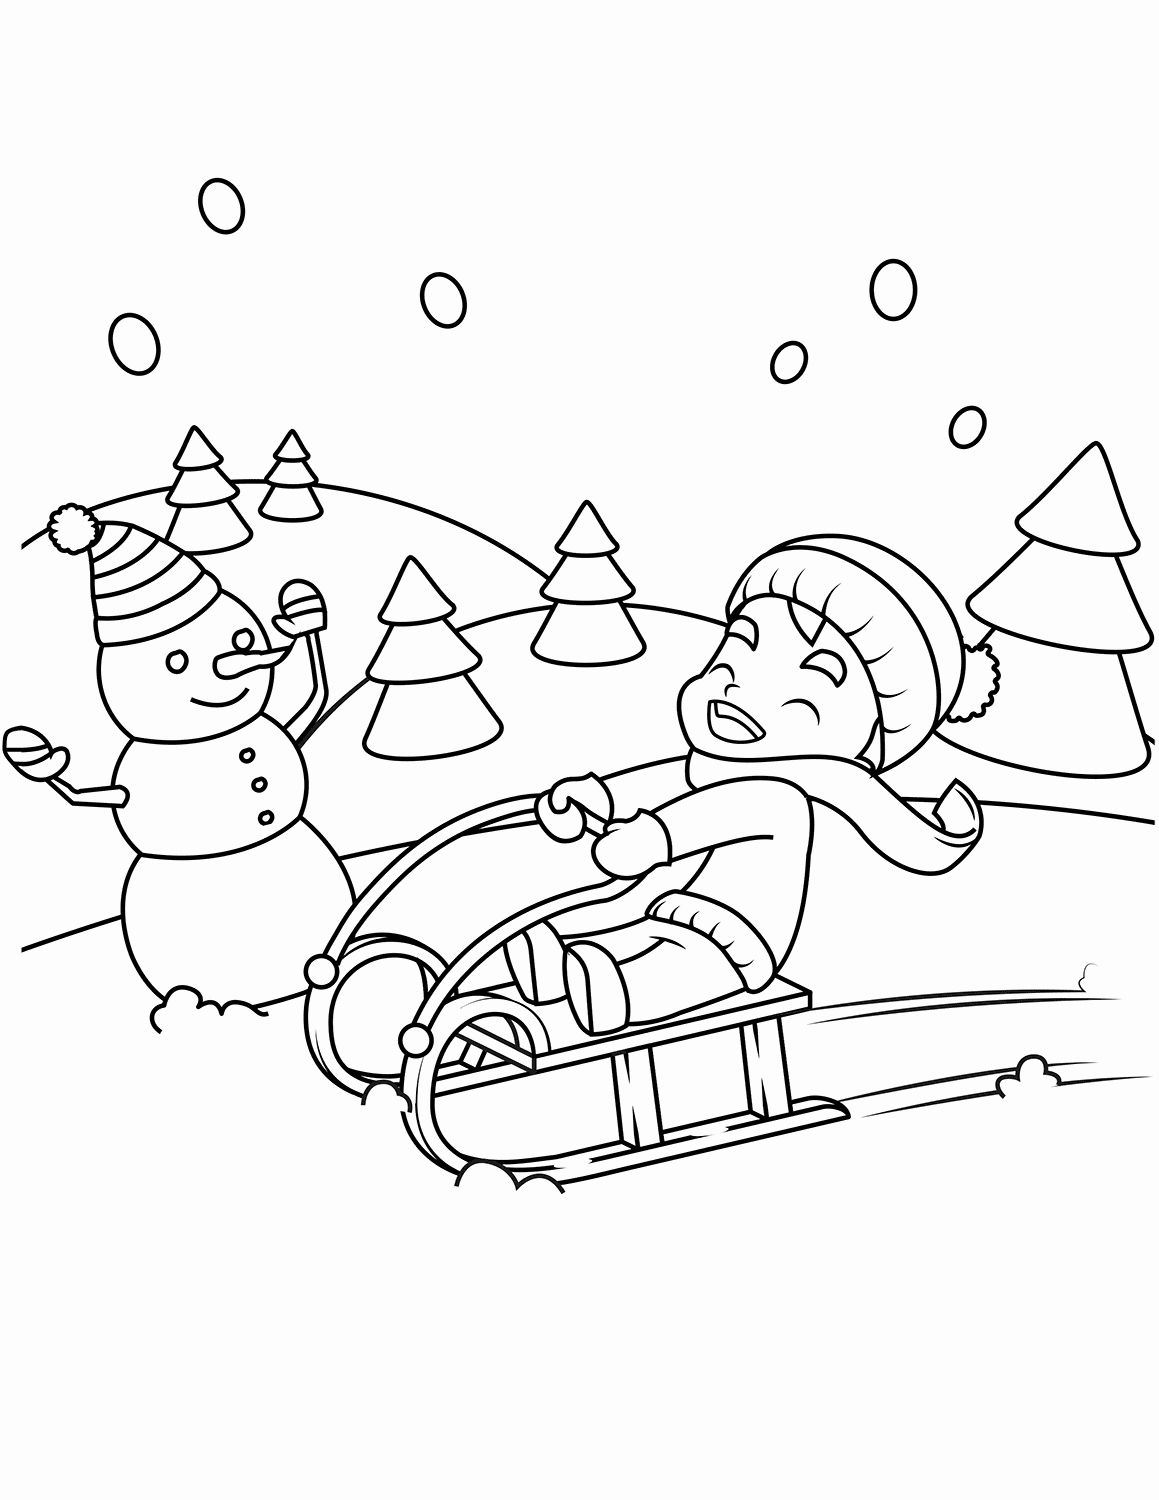 Coloring Pages for Kids Winter in 2020 | Coloring pages ...